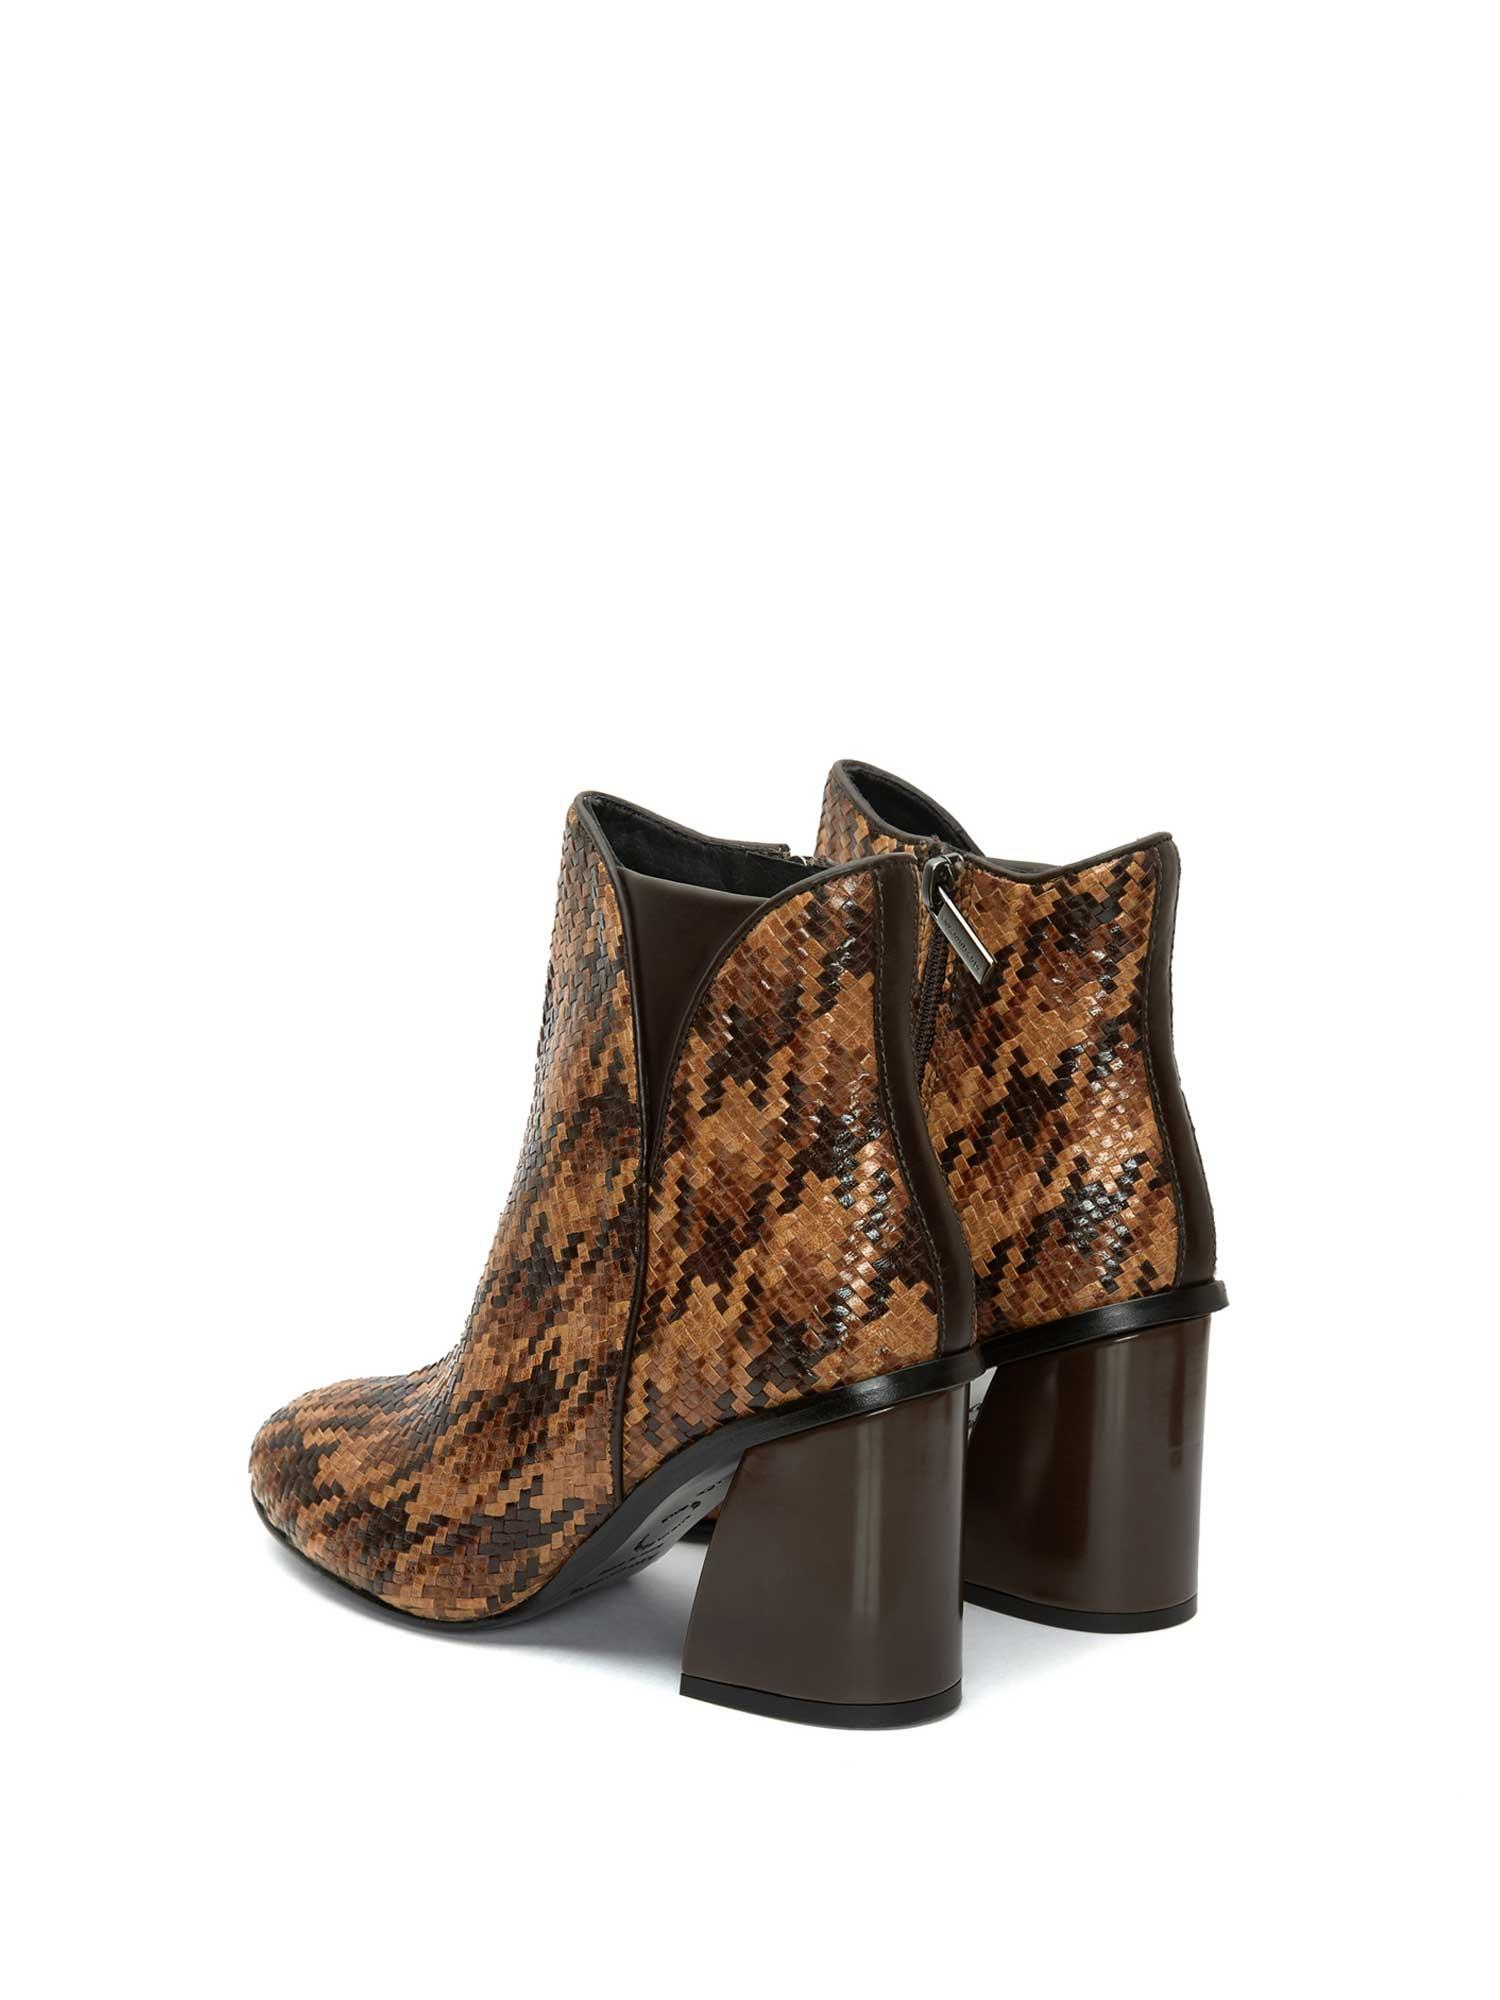 NATALI TRZ PATA DE GALLO C15 ANKLE BOOT